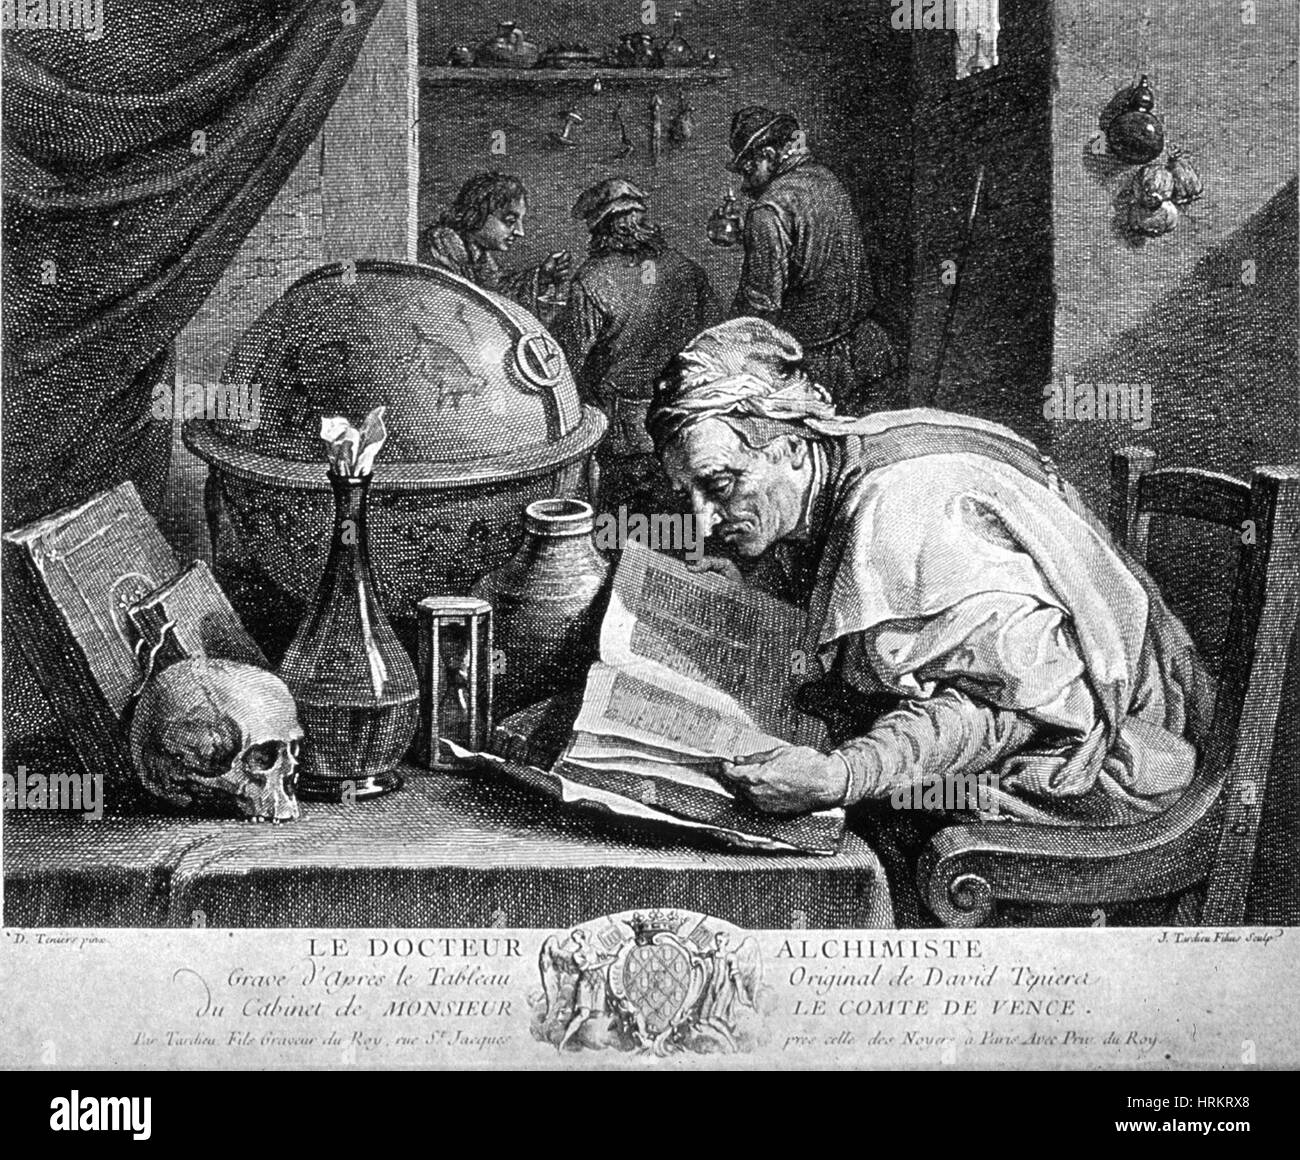 Alchemist, 17th Century - Stock Image